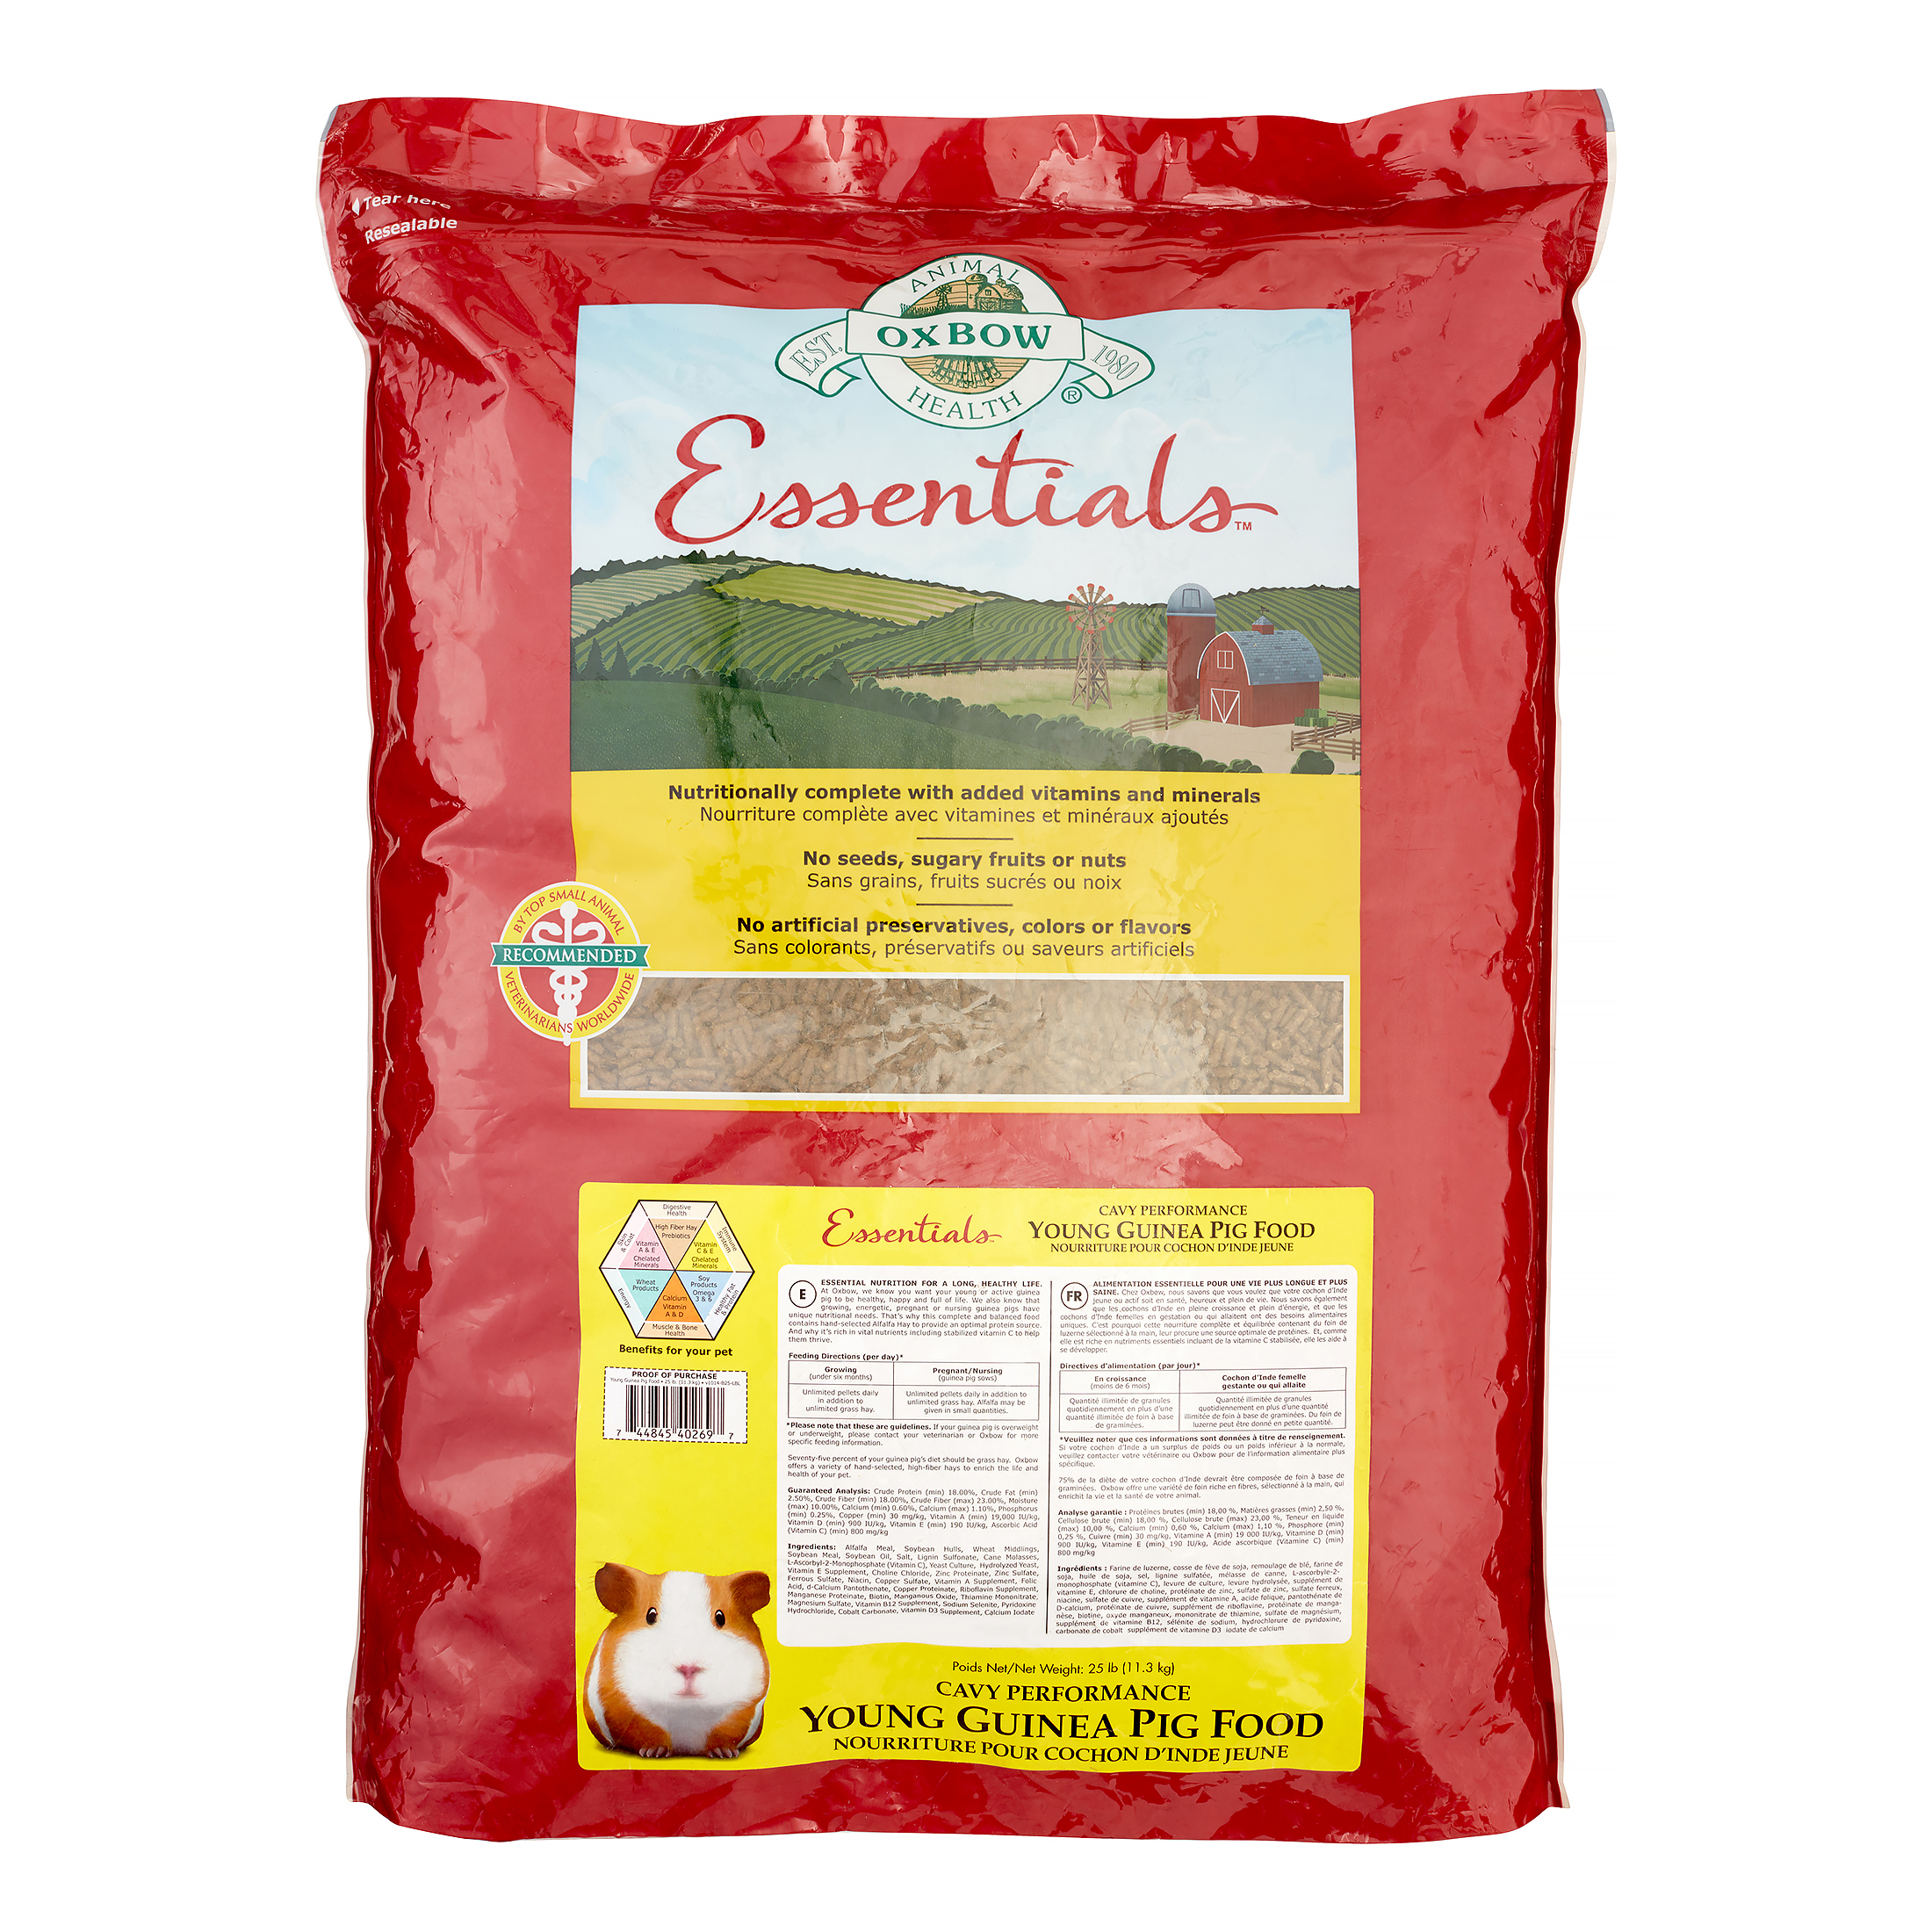 Oxbow Essentials Adult Dry Guinea Pig Food, 25 lbs.